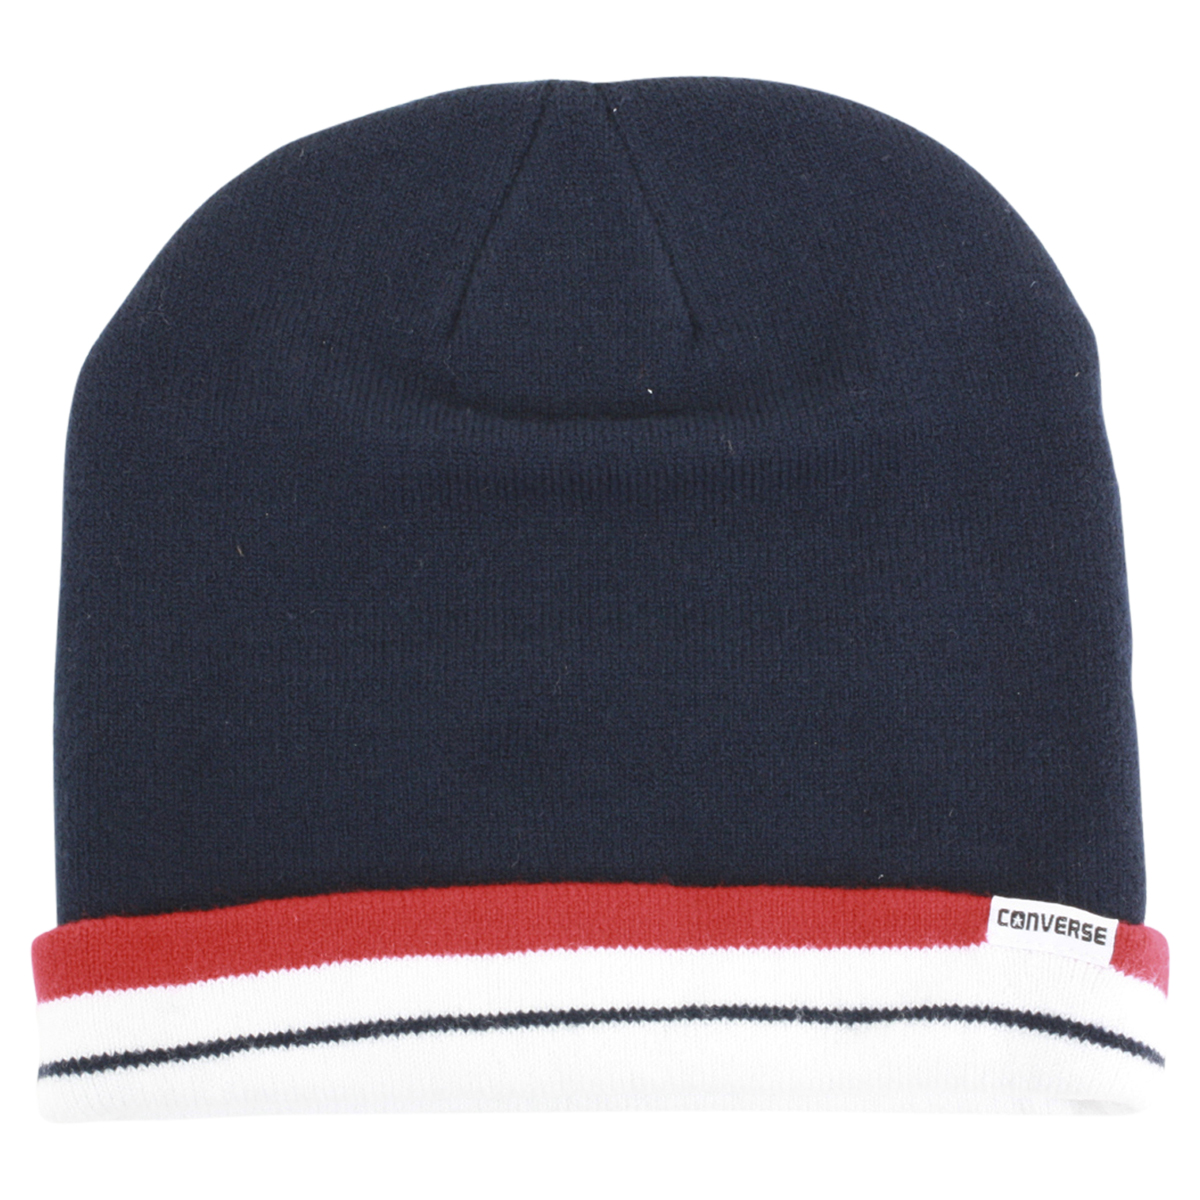 1a19a13e0 Details about Converse Men's All Star Navy Beanie Cap Winter Hat (One Size  Fits Most)